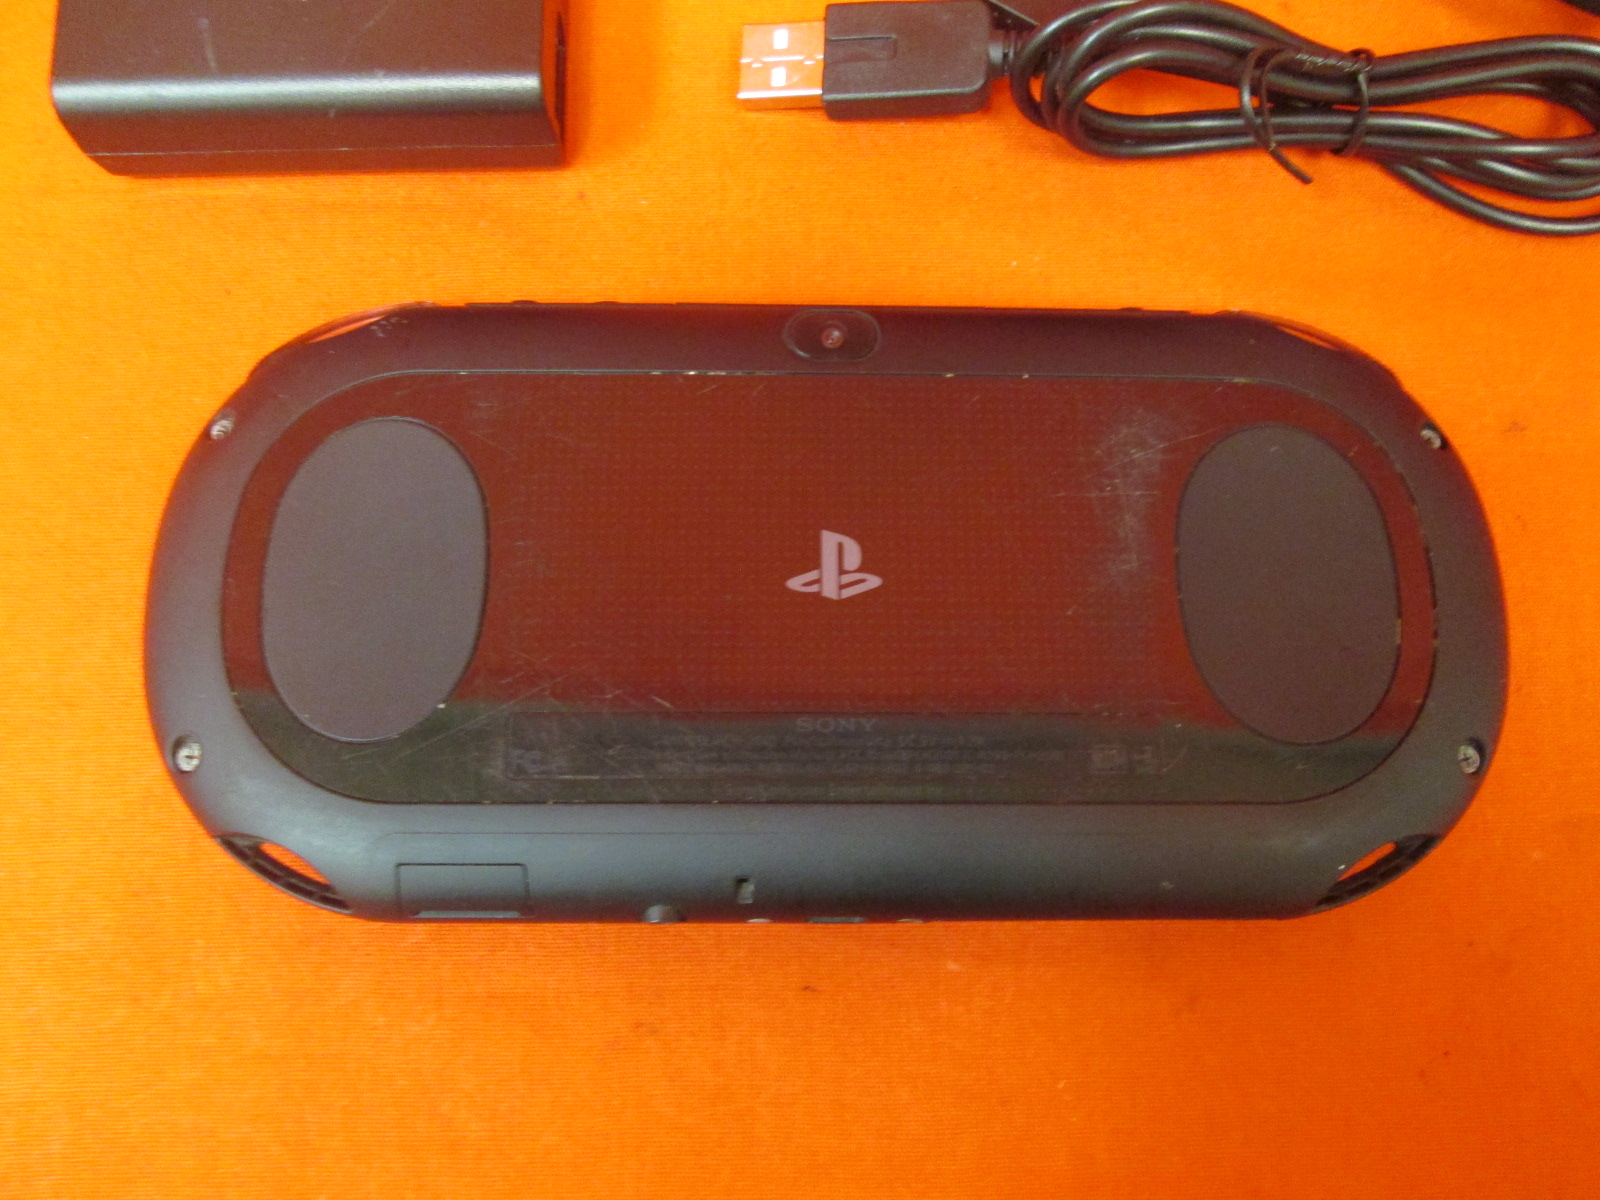 Image 1 of Sony PlayStation Vita Wifi Portable Handheld Console